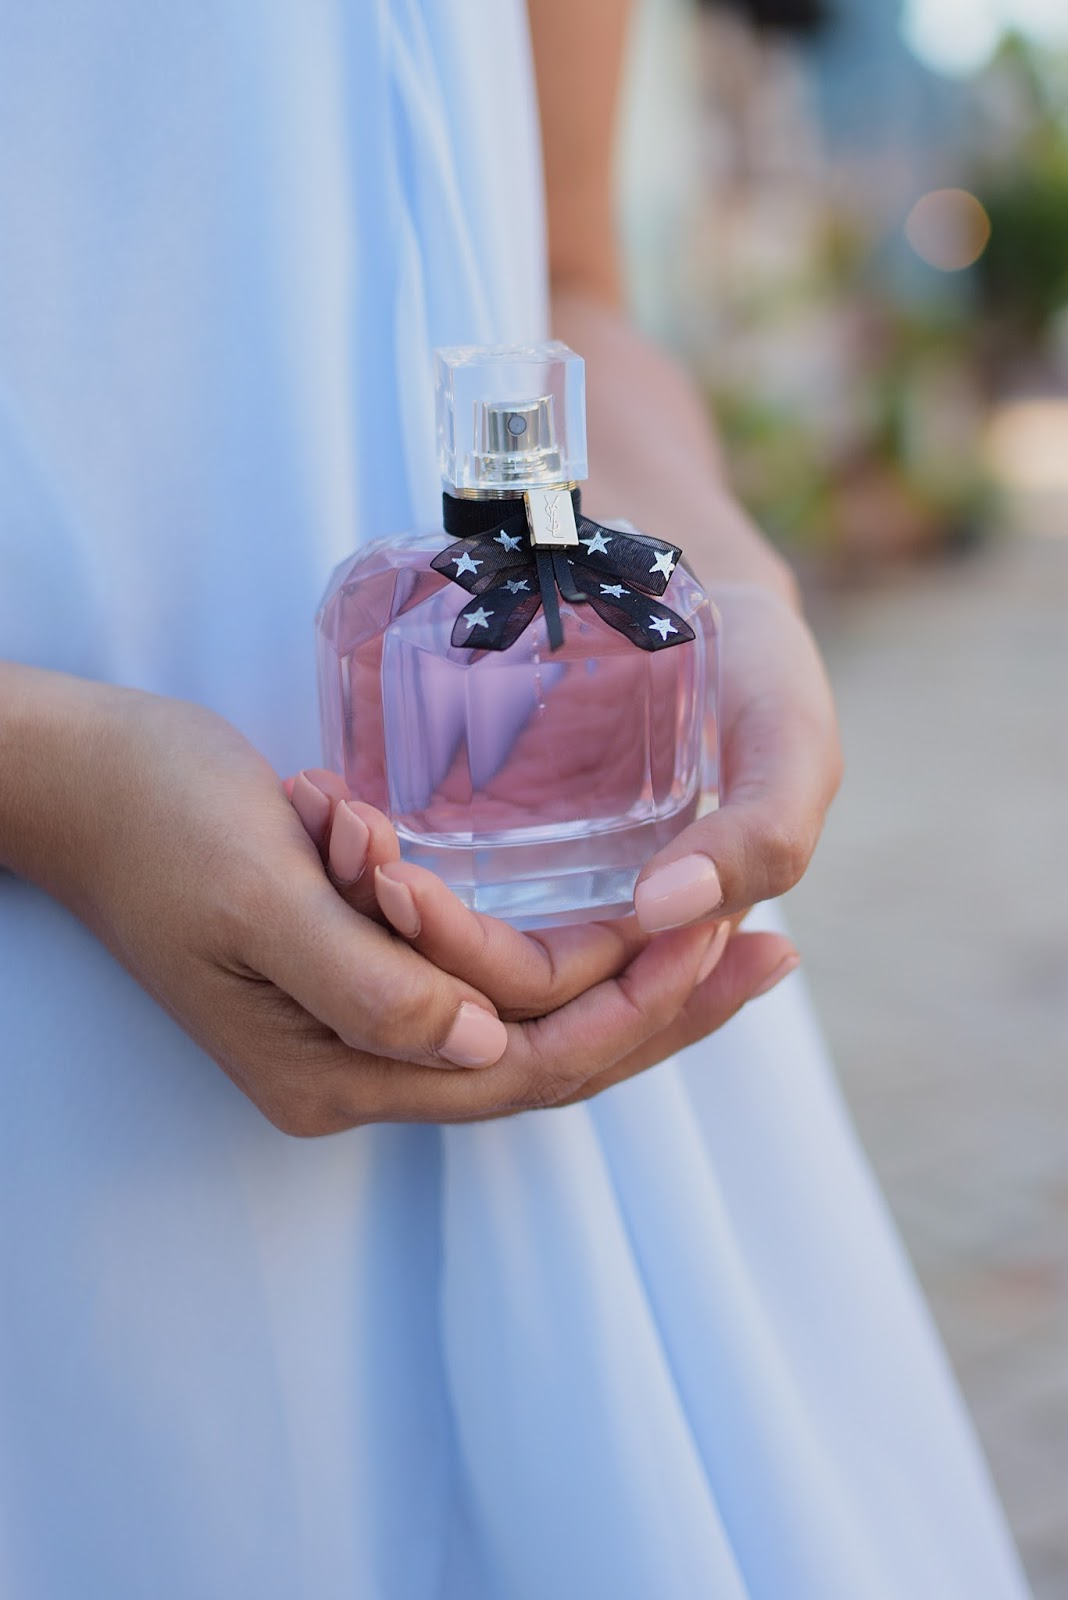 Mon Paris Eau de Parfum Star Collector A feminine fragrance, inspired by Paris, the city of love by MariEstilo.